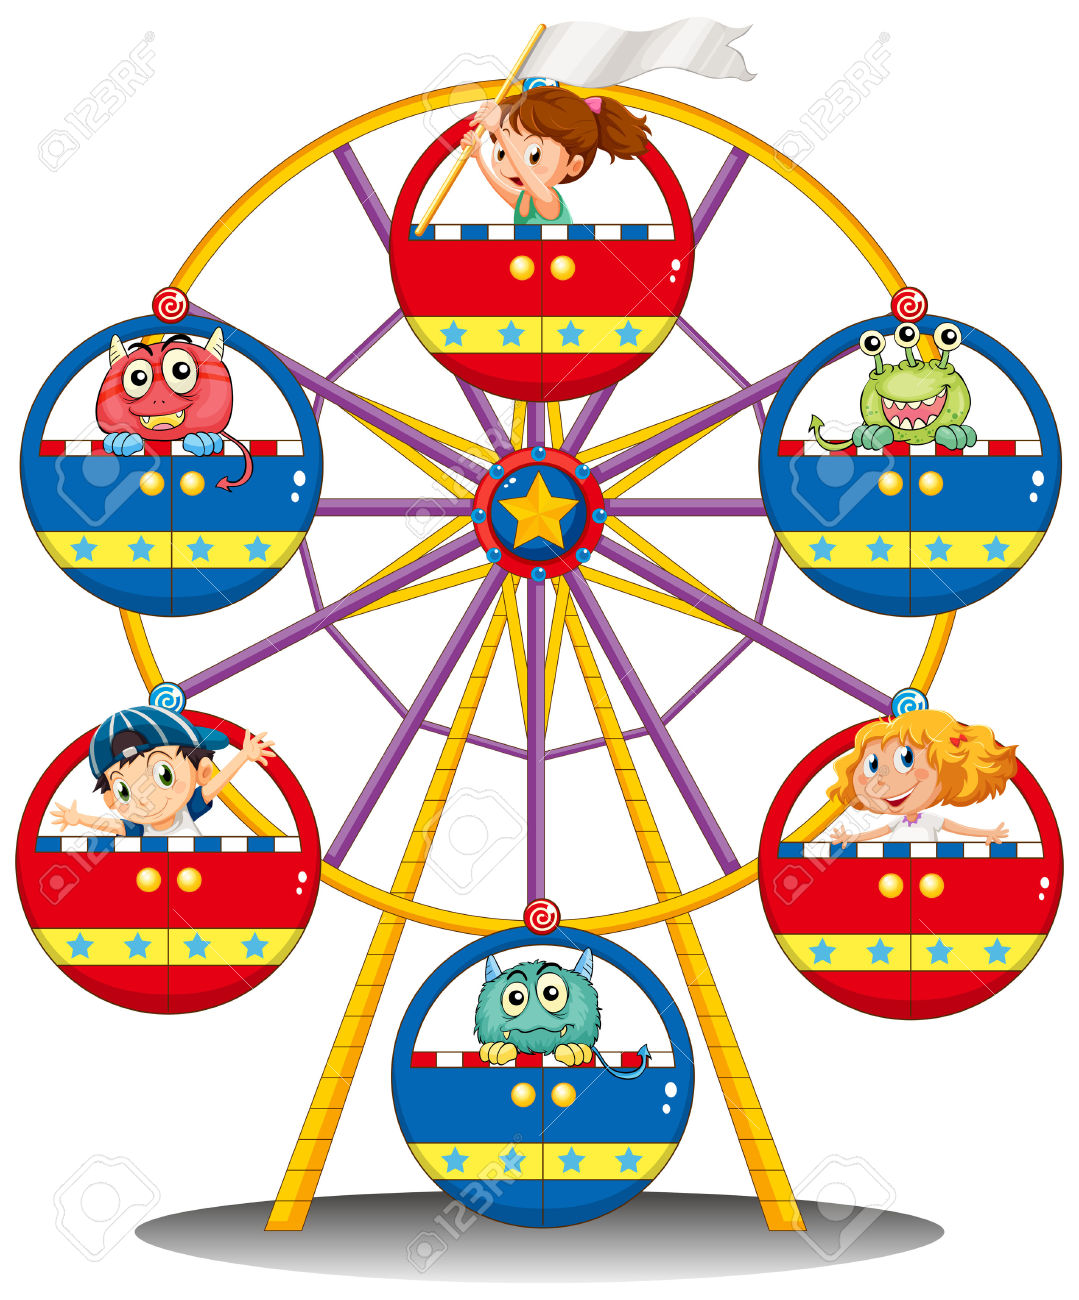 Kids carnival ride clipart clipground - Clipart carnaval ...